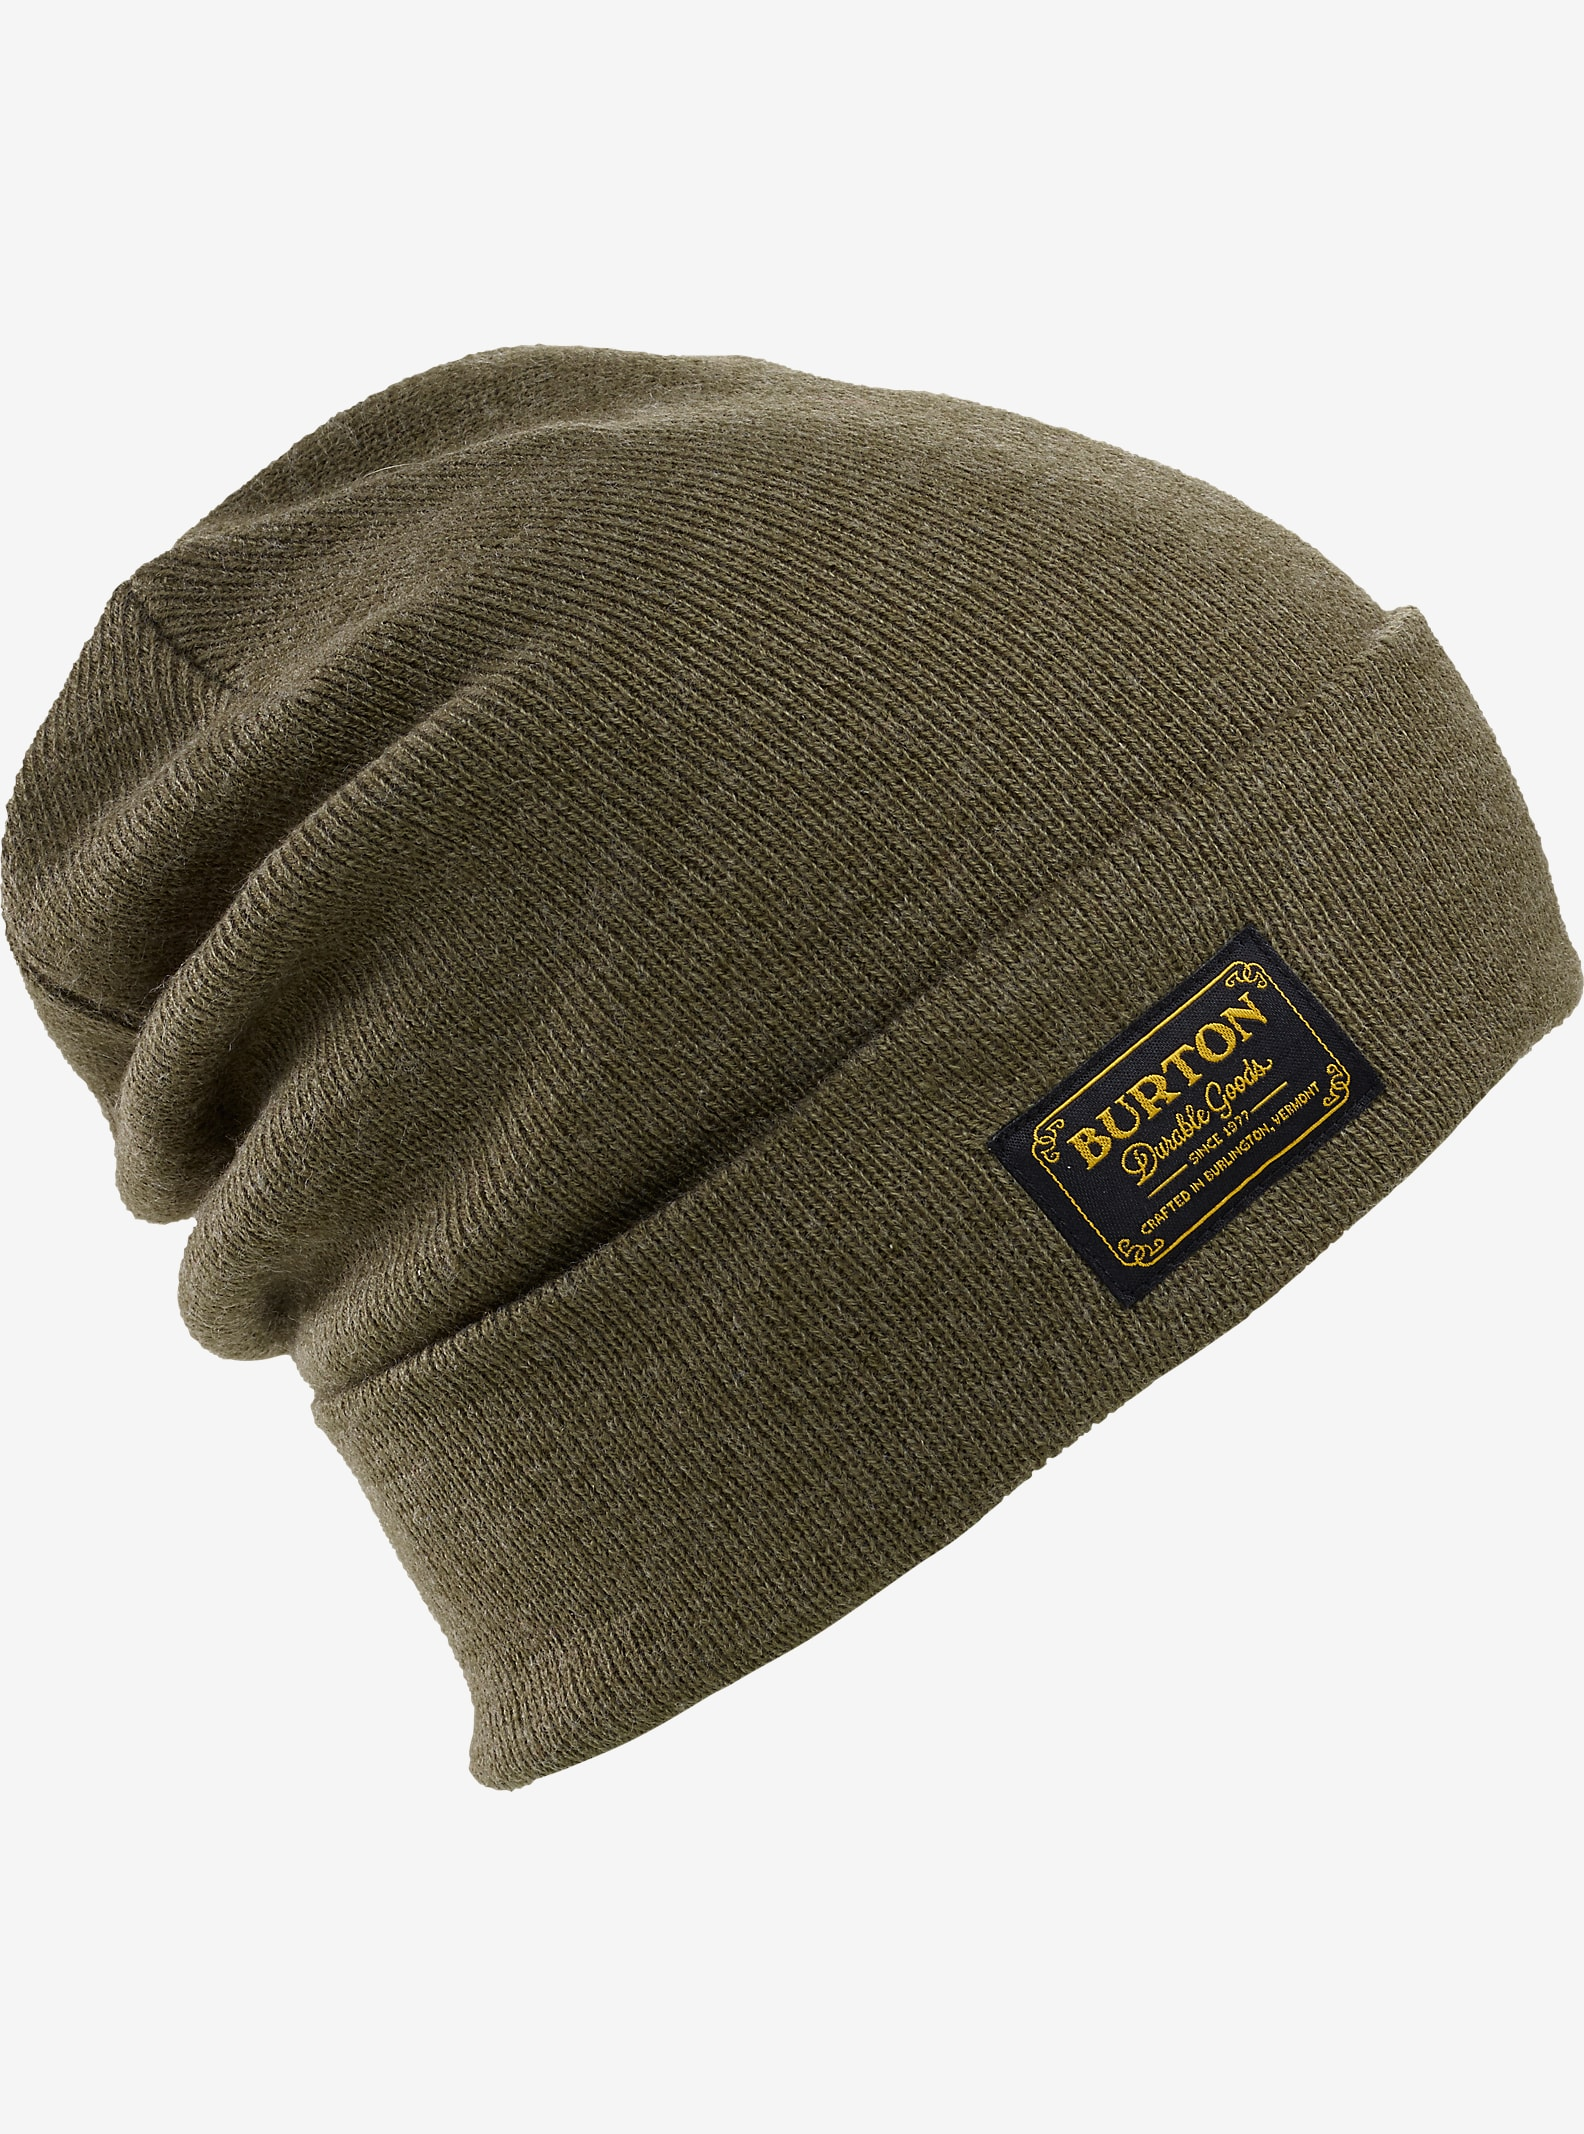 Burton Kactusbunch Tall Beanie shown in Keef